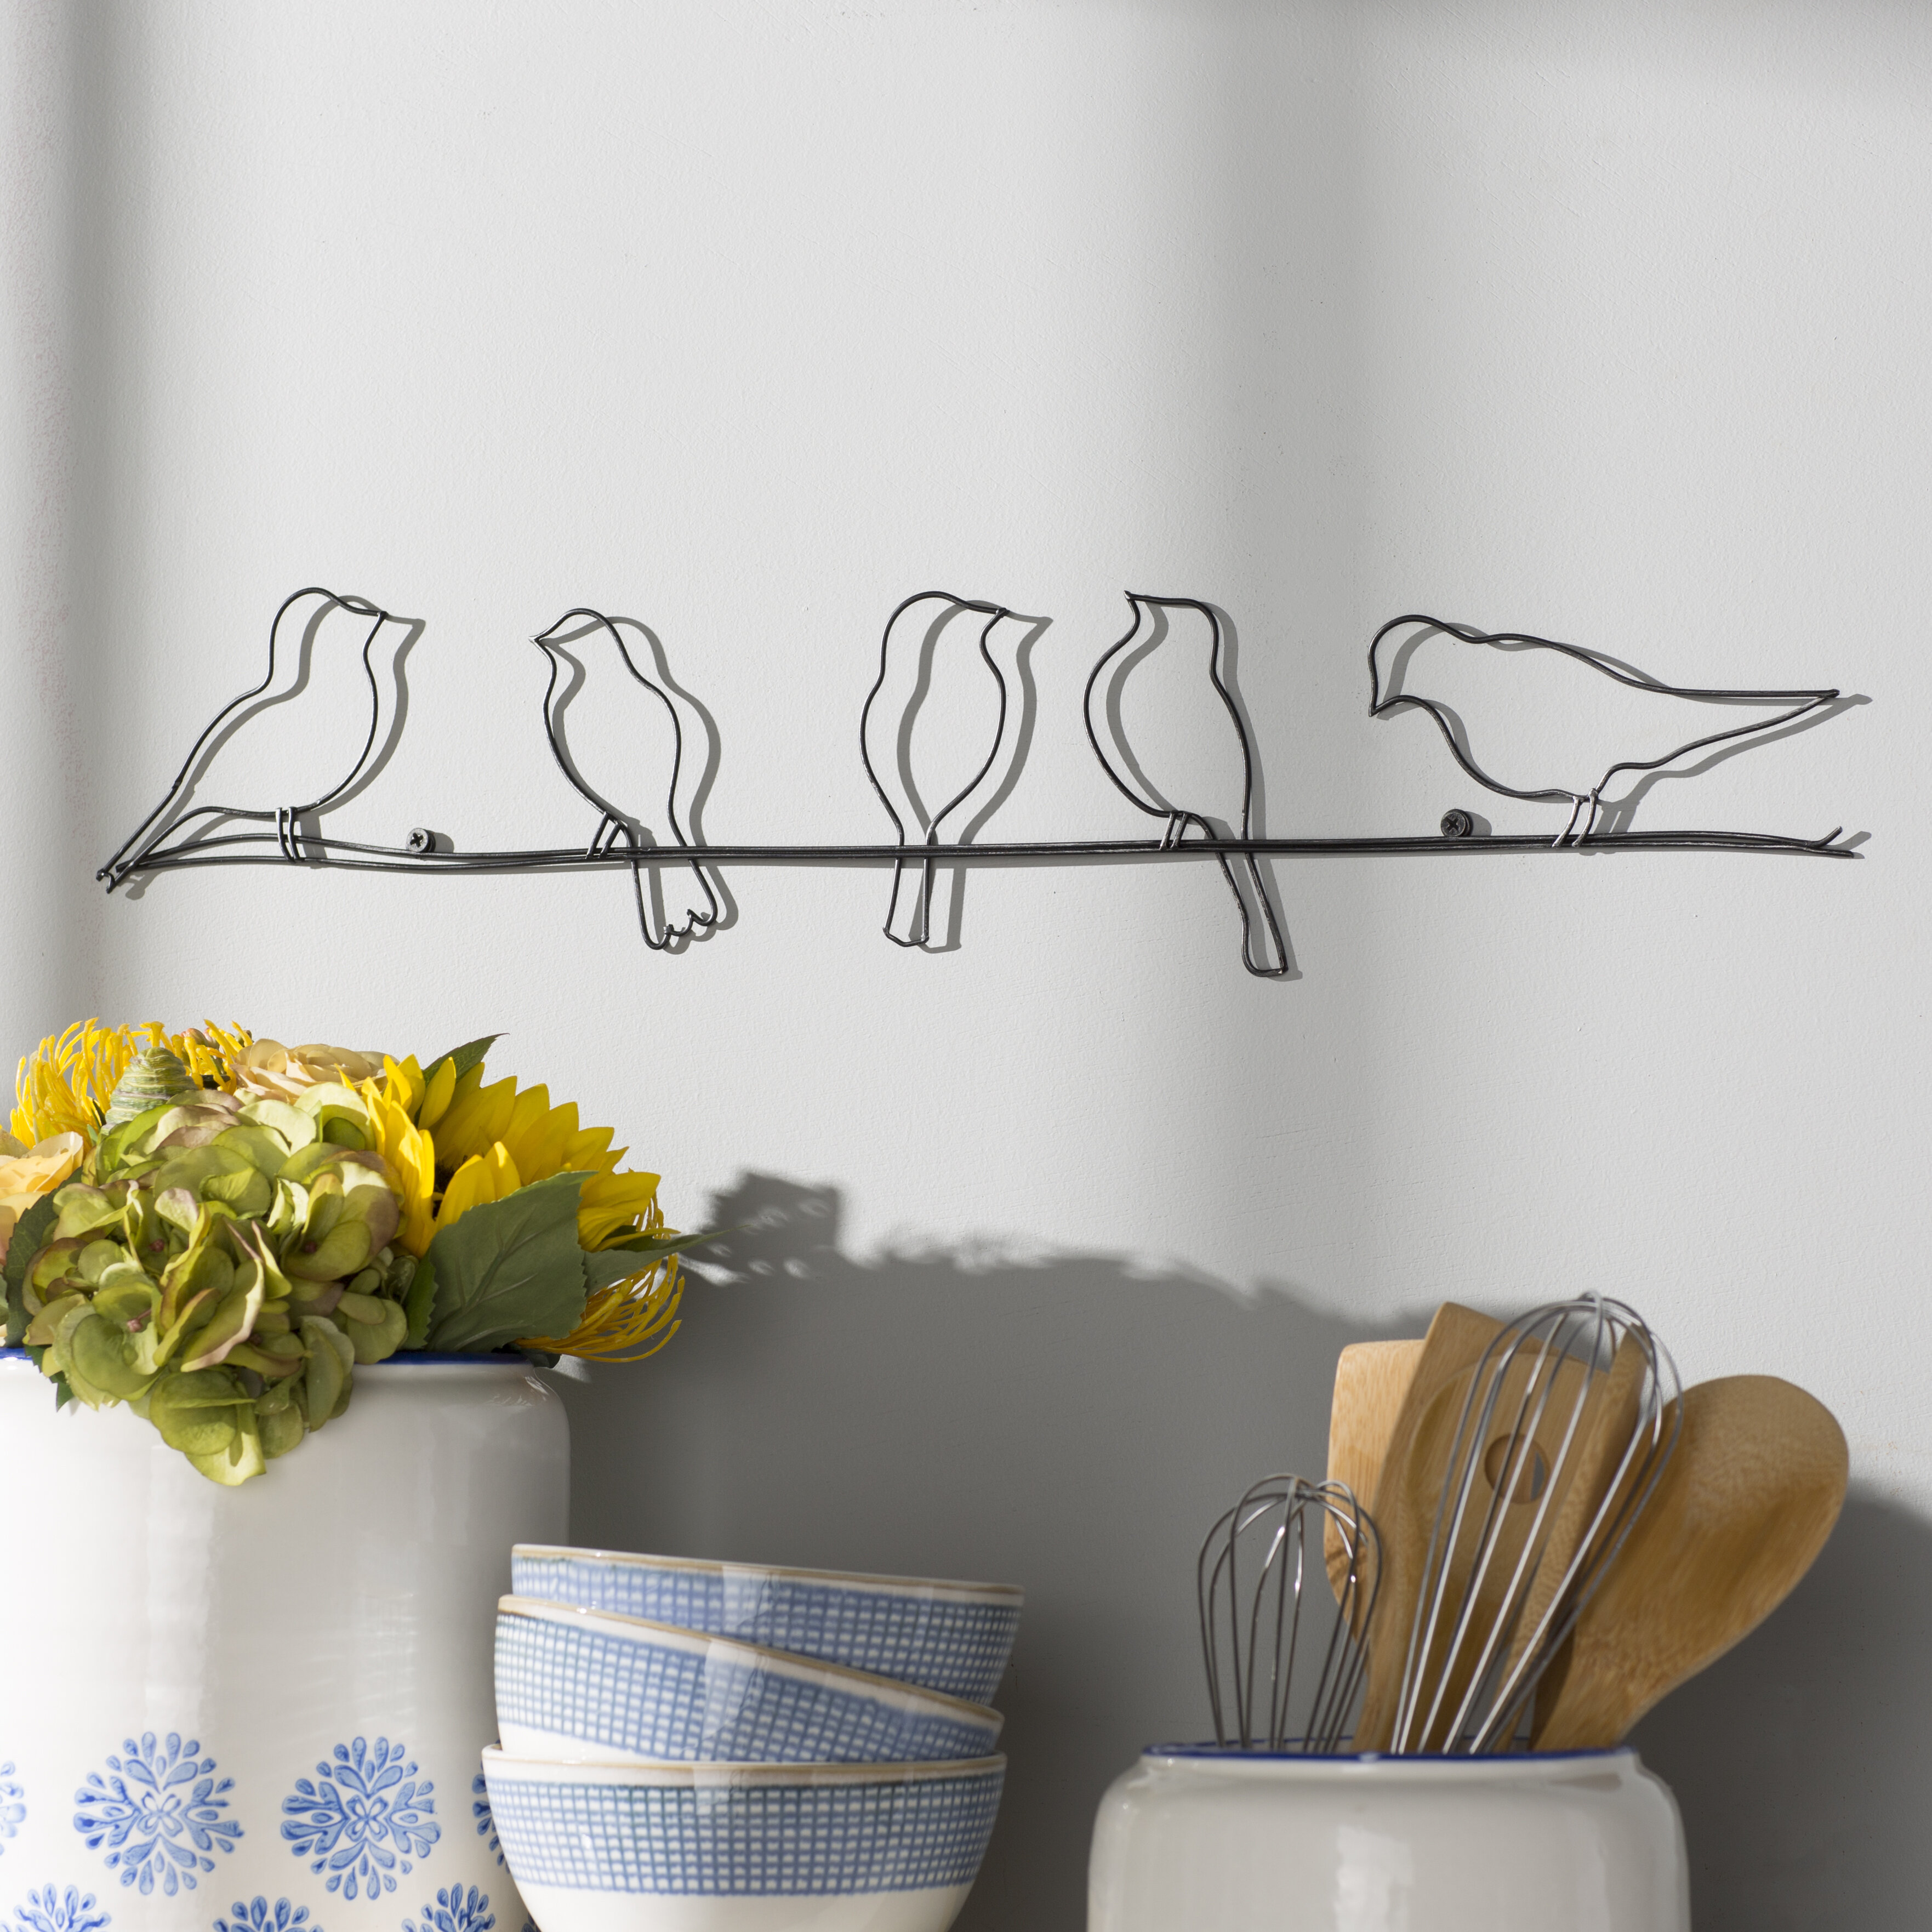 kitchen lamps styles decals inspiration rattling sticker over island decorating s designs with pendant wall and as modern decorations artistic gorgeous ideas decor